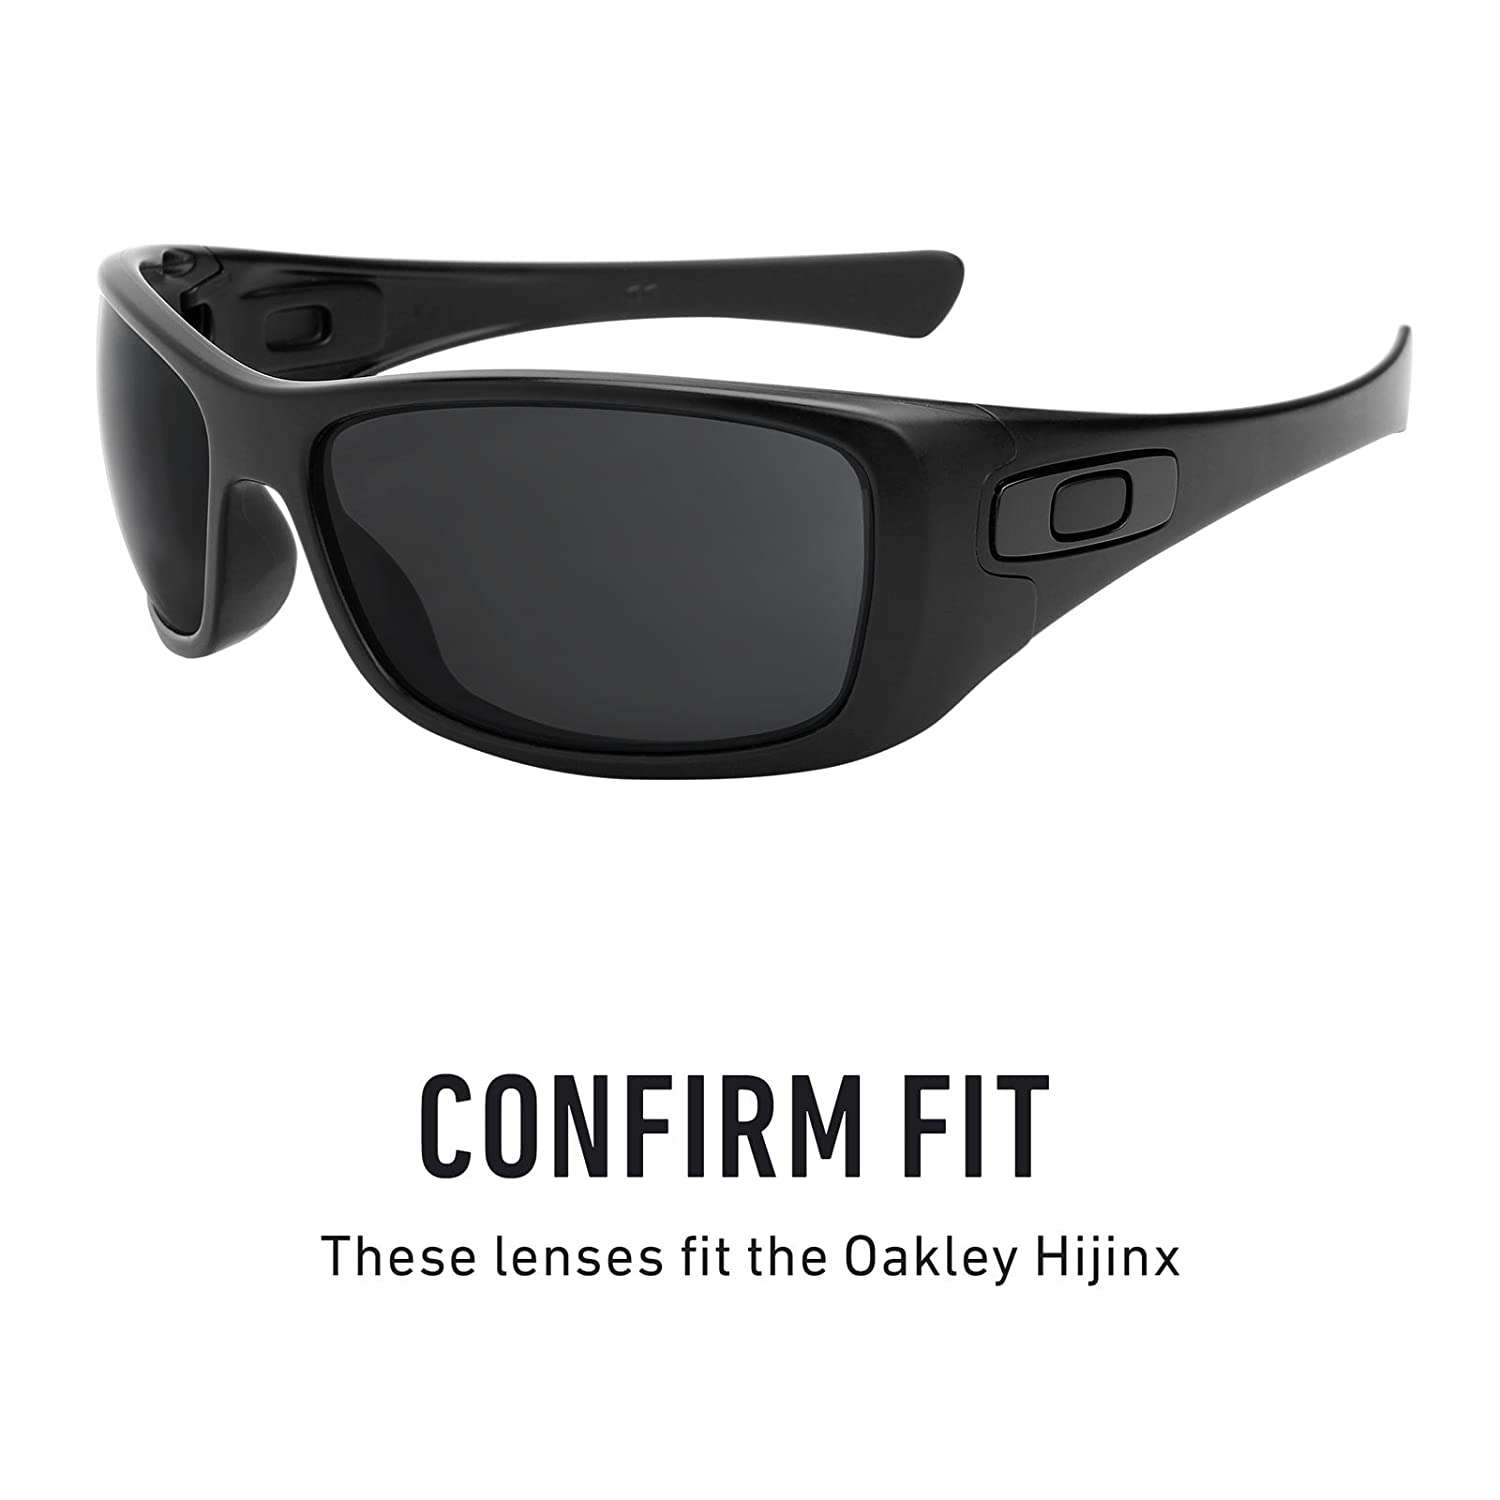 c842fc15e29f6 Revant Replacement Lenses for Oakley Hijinx Black Chrome MirrorShield®   Amazon.ca  Sports   Outdoors